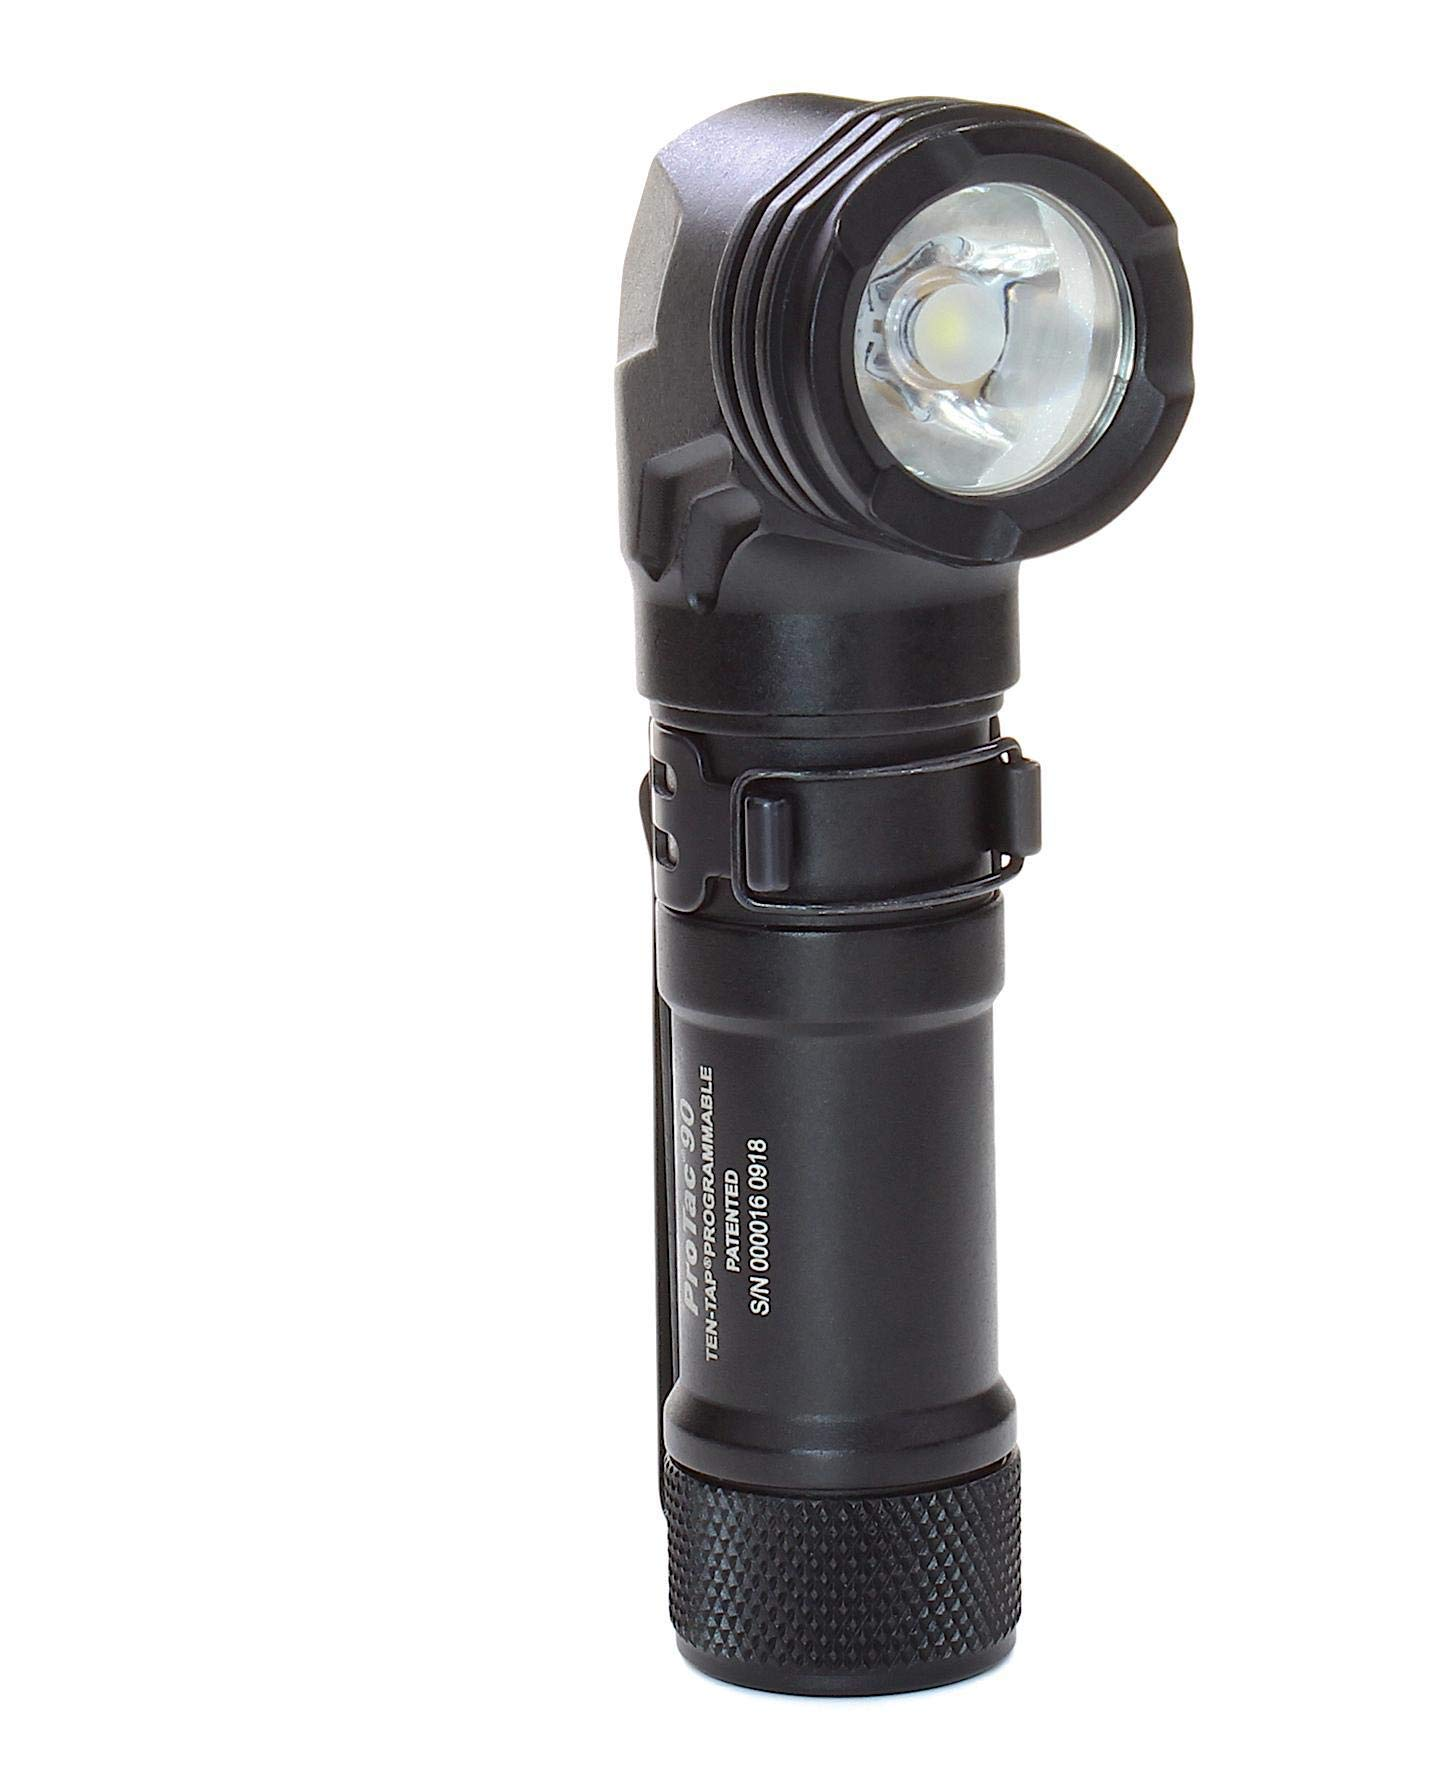 Streamlight 88087 ProTac 90 Right-Angle Light with CR123A Lithium Battery and AA Alkaline Battery - Clam - Black- 300 Lumens